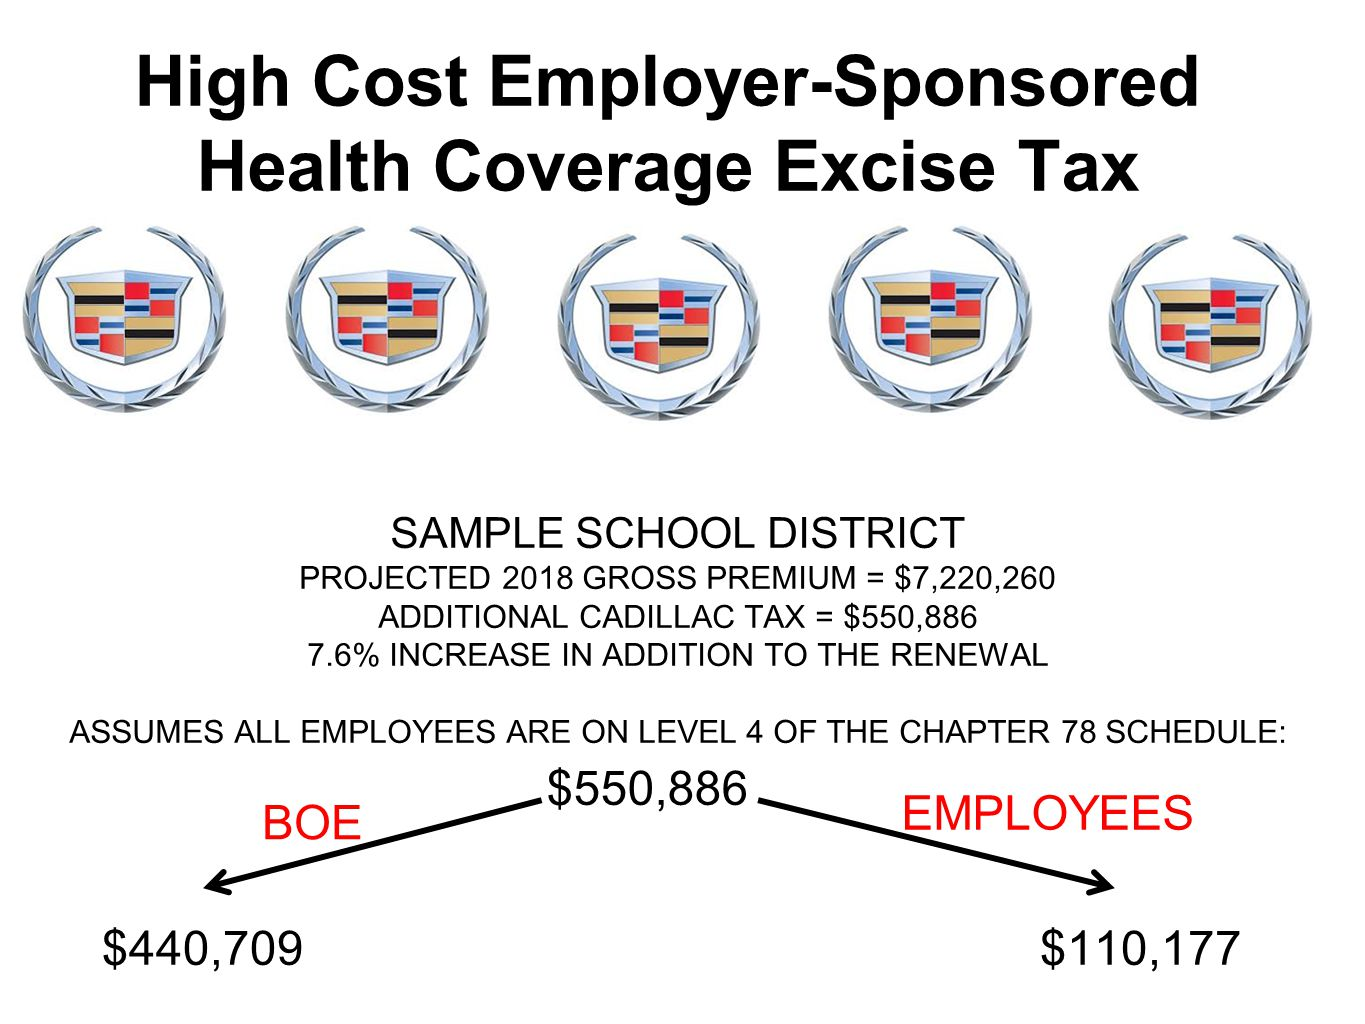 High Cost Employer-Sponsored Health Coverage Excise Tax SAMPLE SCHOOL DISTRICT PROJECTED 2018 GROSS PREMIUM = $7,220,260 ADDITIONAL CADILLAC TAX = $55